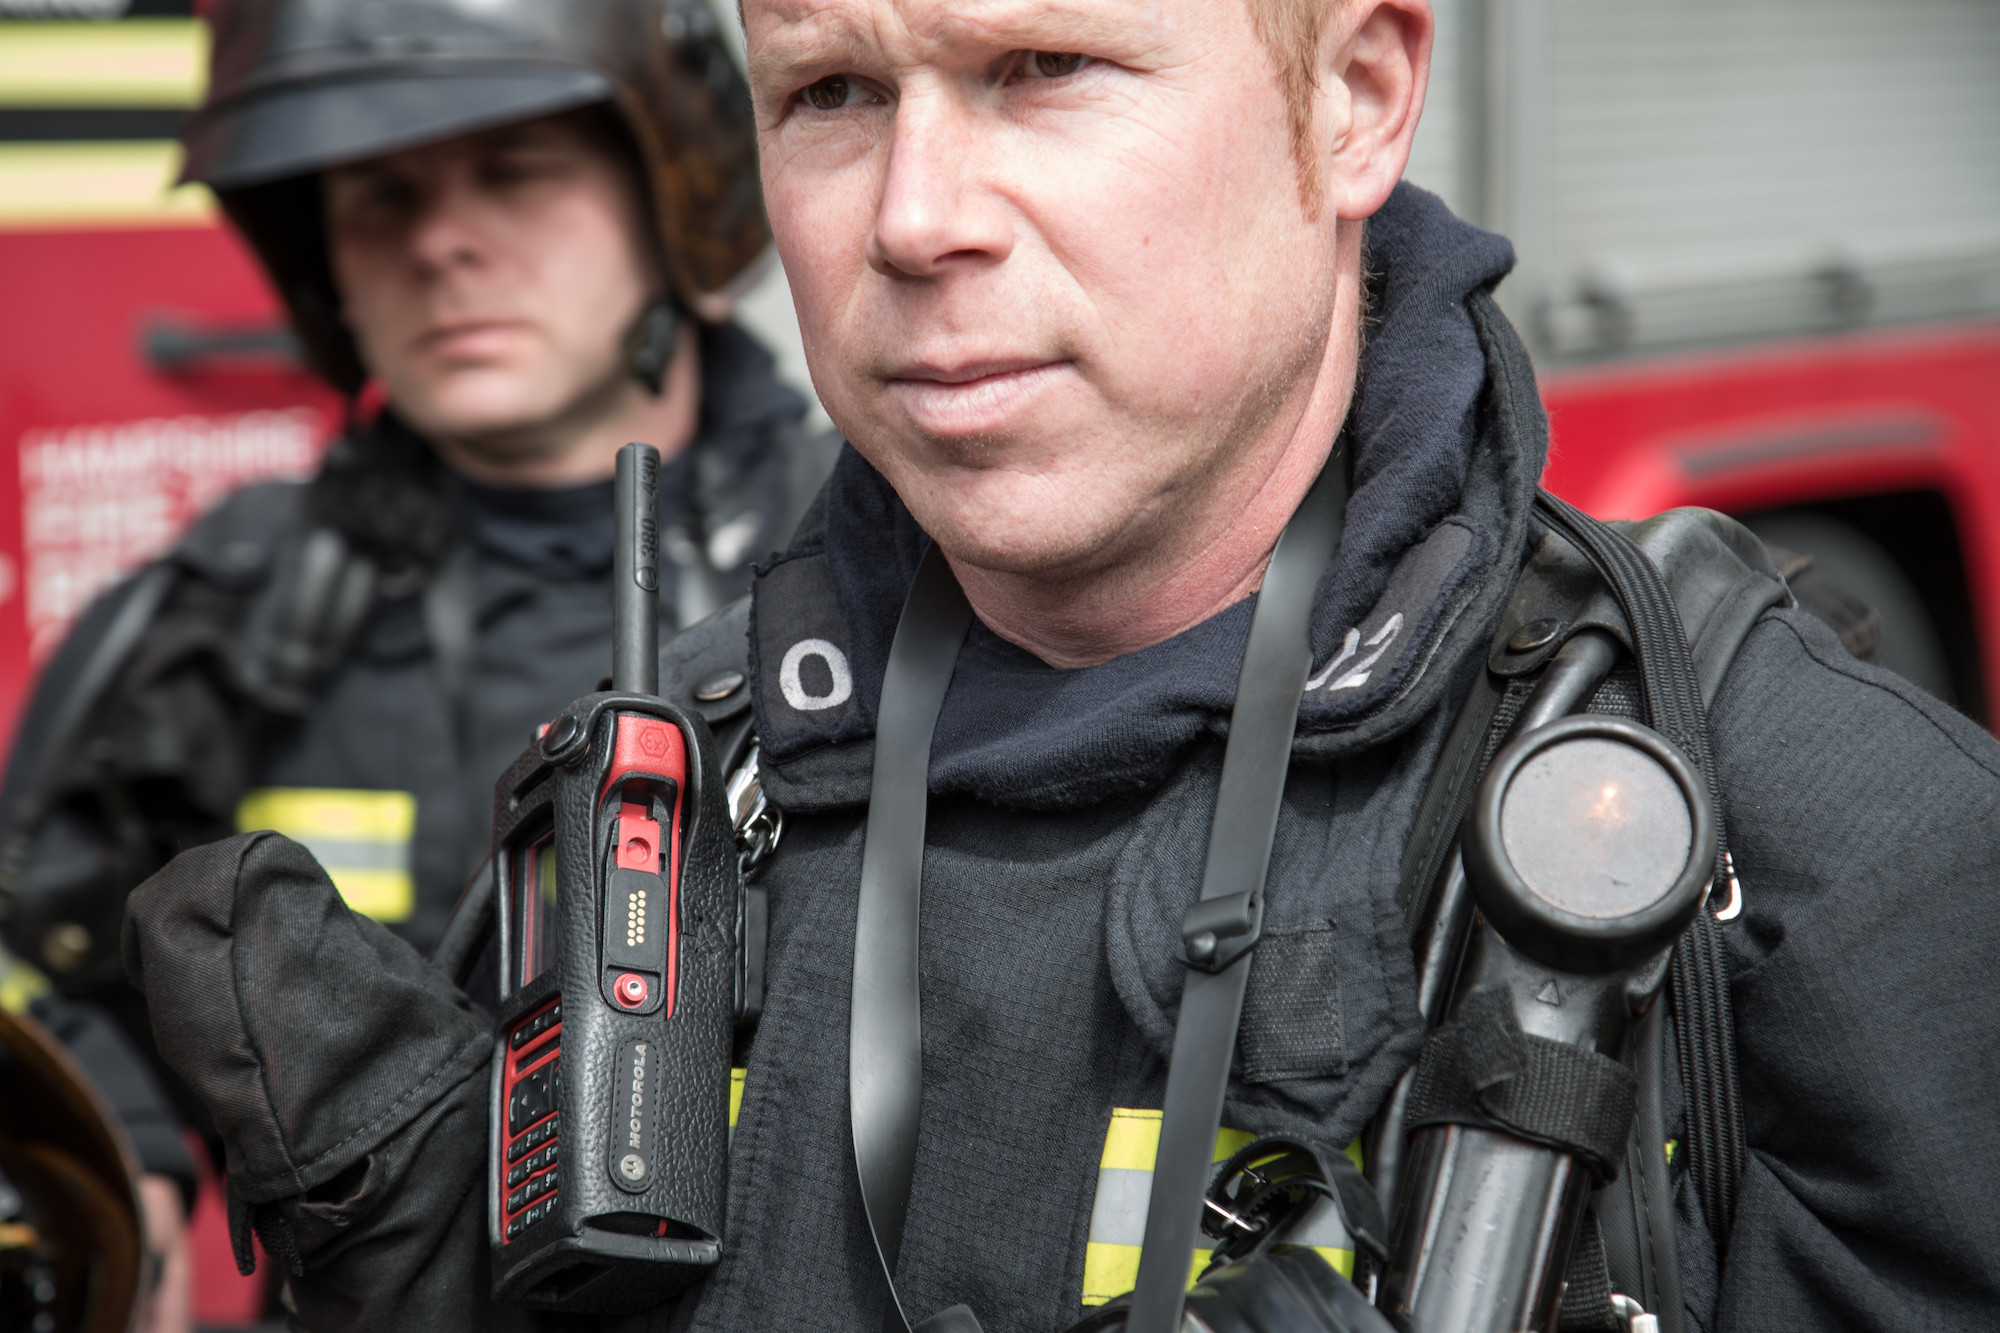 Fire and rescue teams with Motorola Solutions